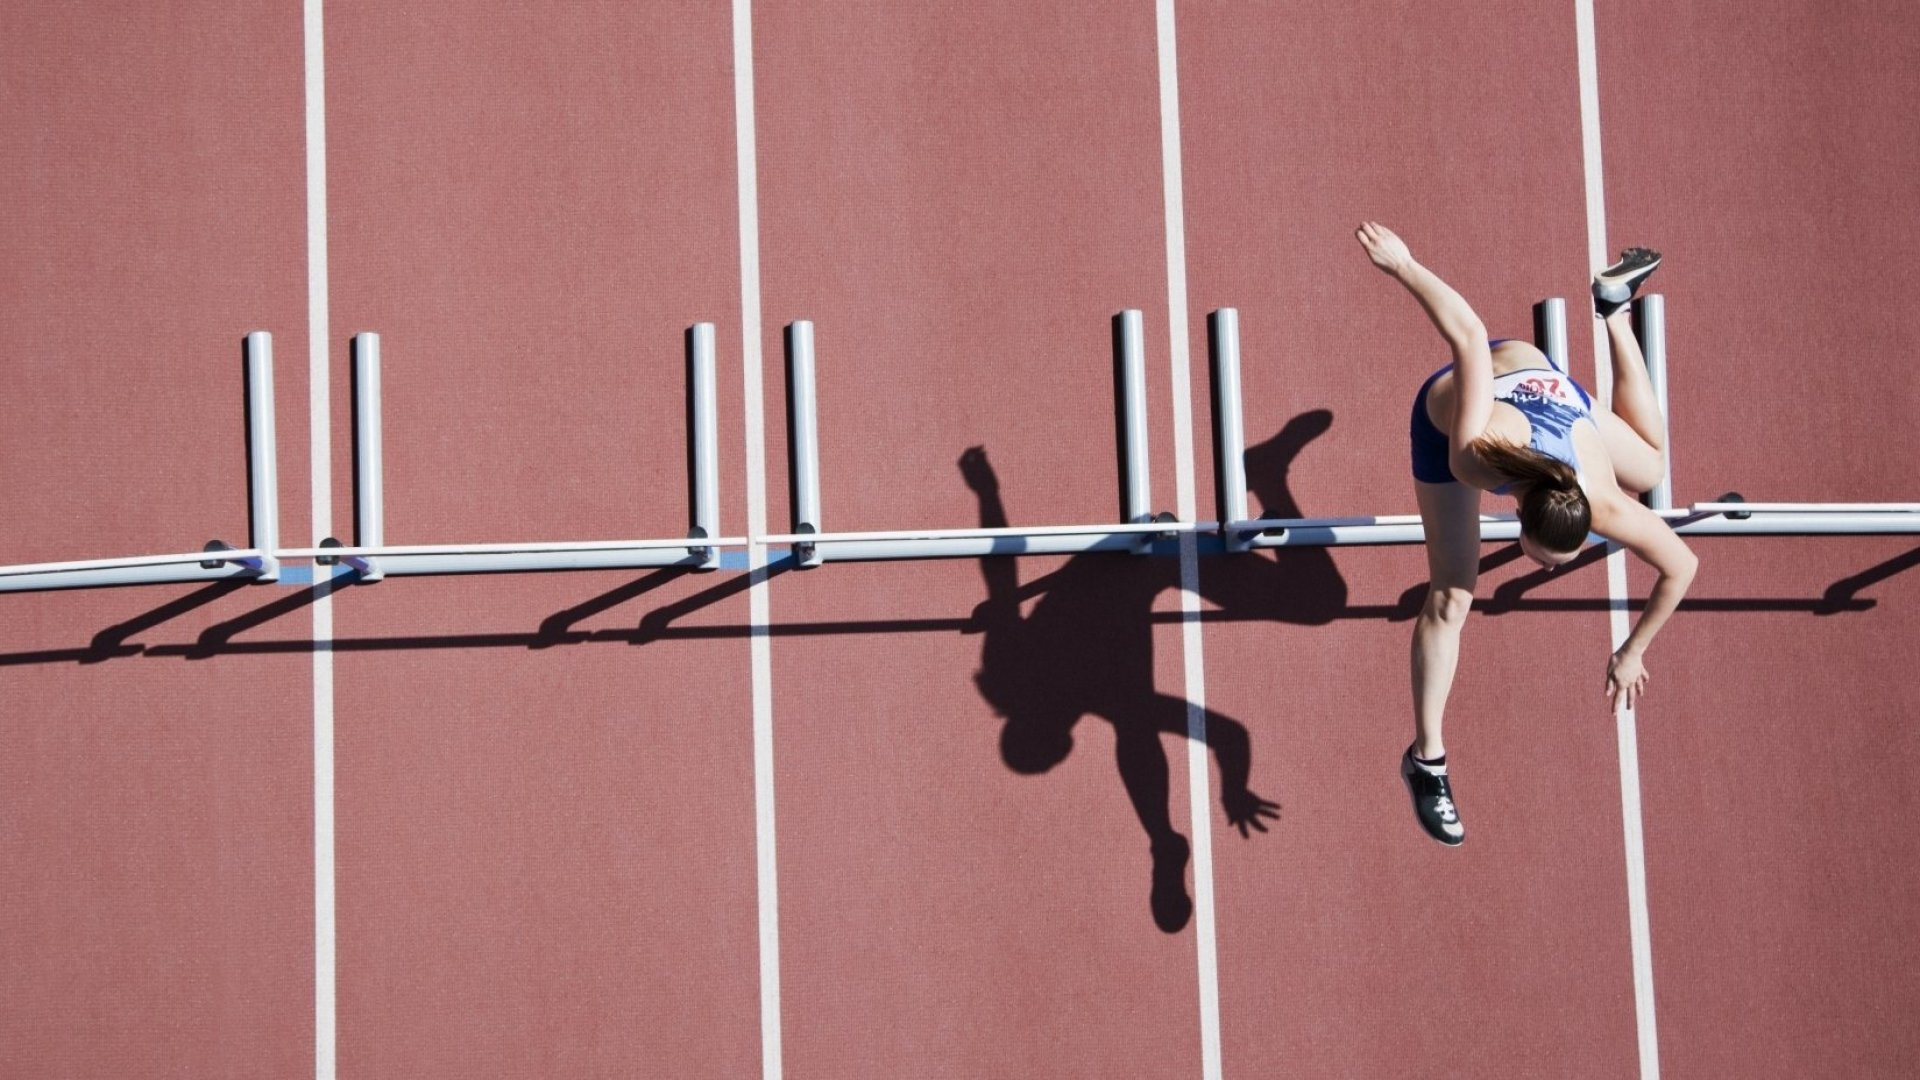 Want to Be an Agile Entrepreneur? Get Into This 1 Habit